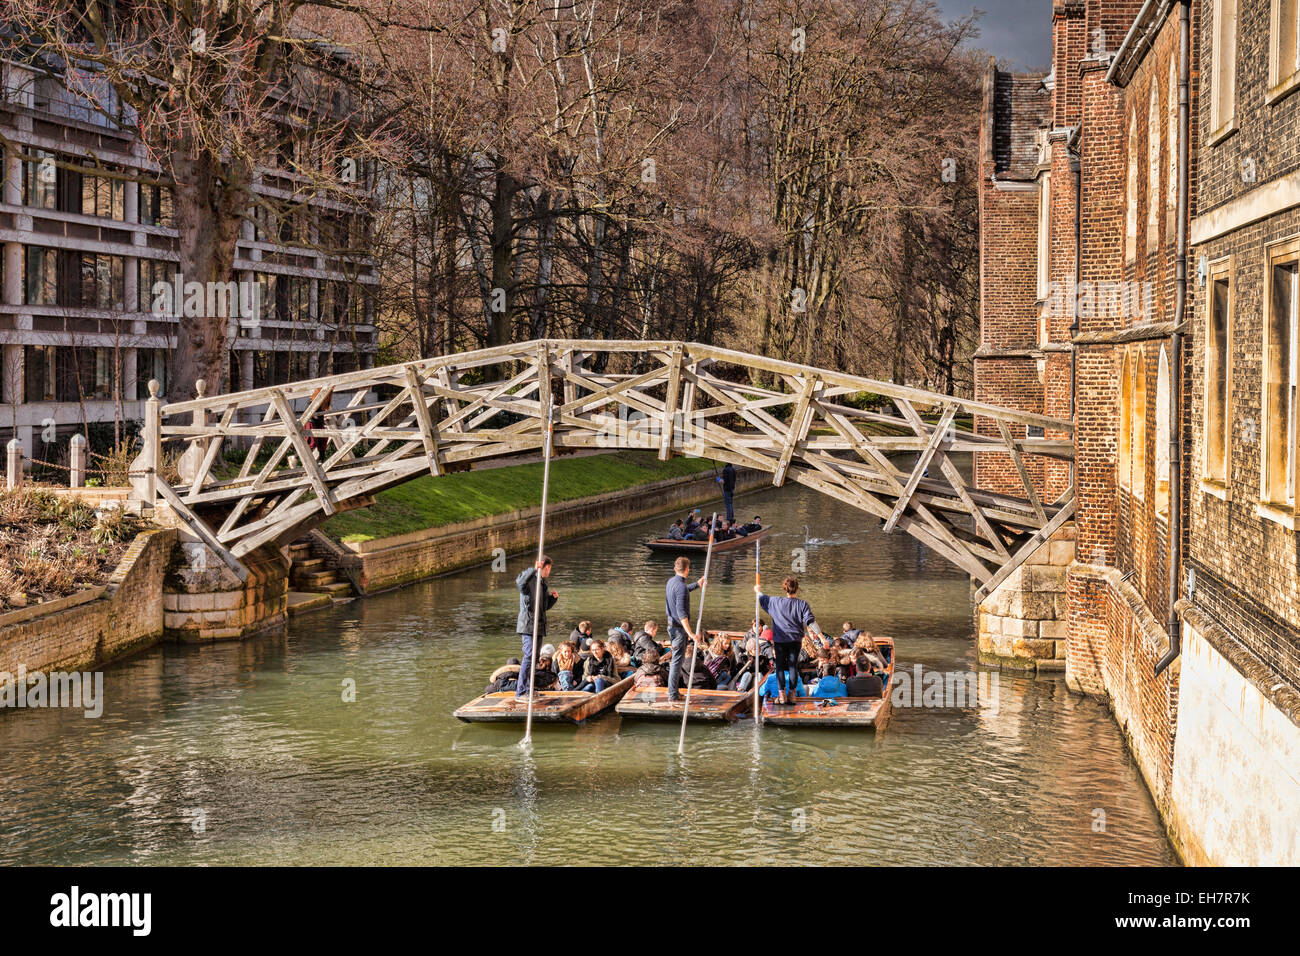 The Mathematical Bridge, Cambridge, which joins two parts of Queens College, with a group of punts passing underneath. - Stock Image